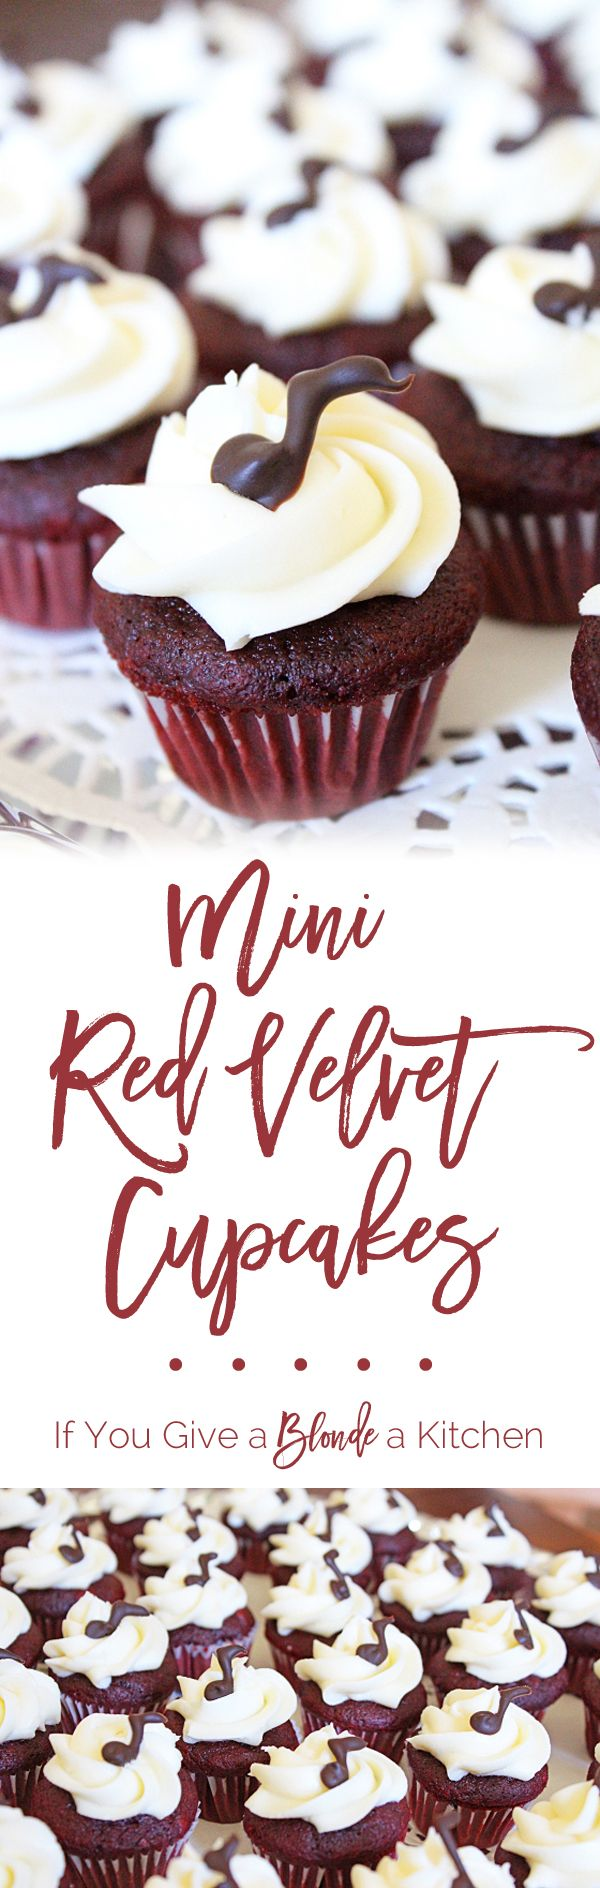 This red velvet cupcakes recipe makes 36 mini cupcakes (or 12 regular-sized cupcakes). They are soft and rich treats with decadent cream cheese frosting. | @If You Give a Blonde a Kitchen